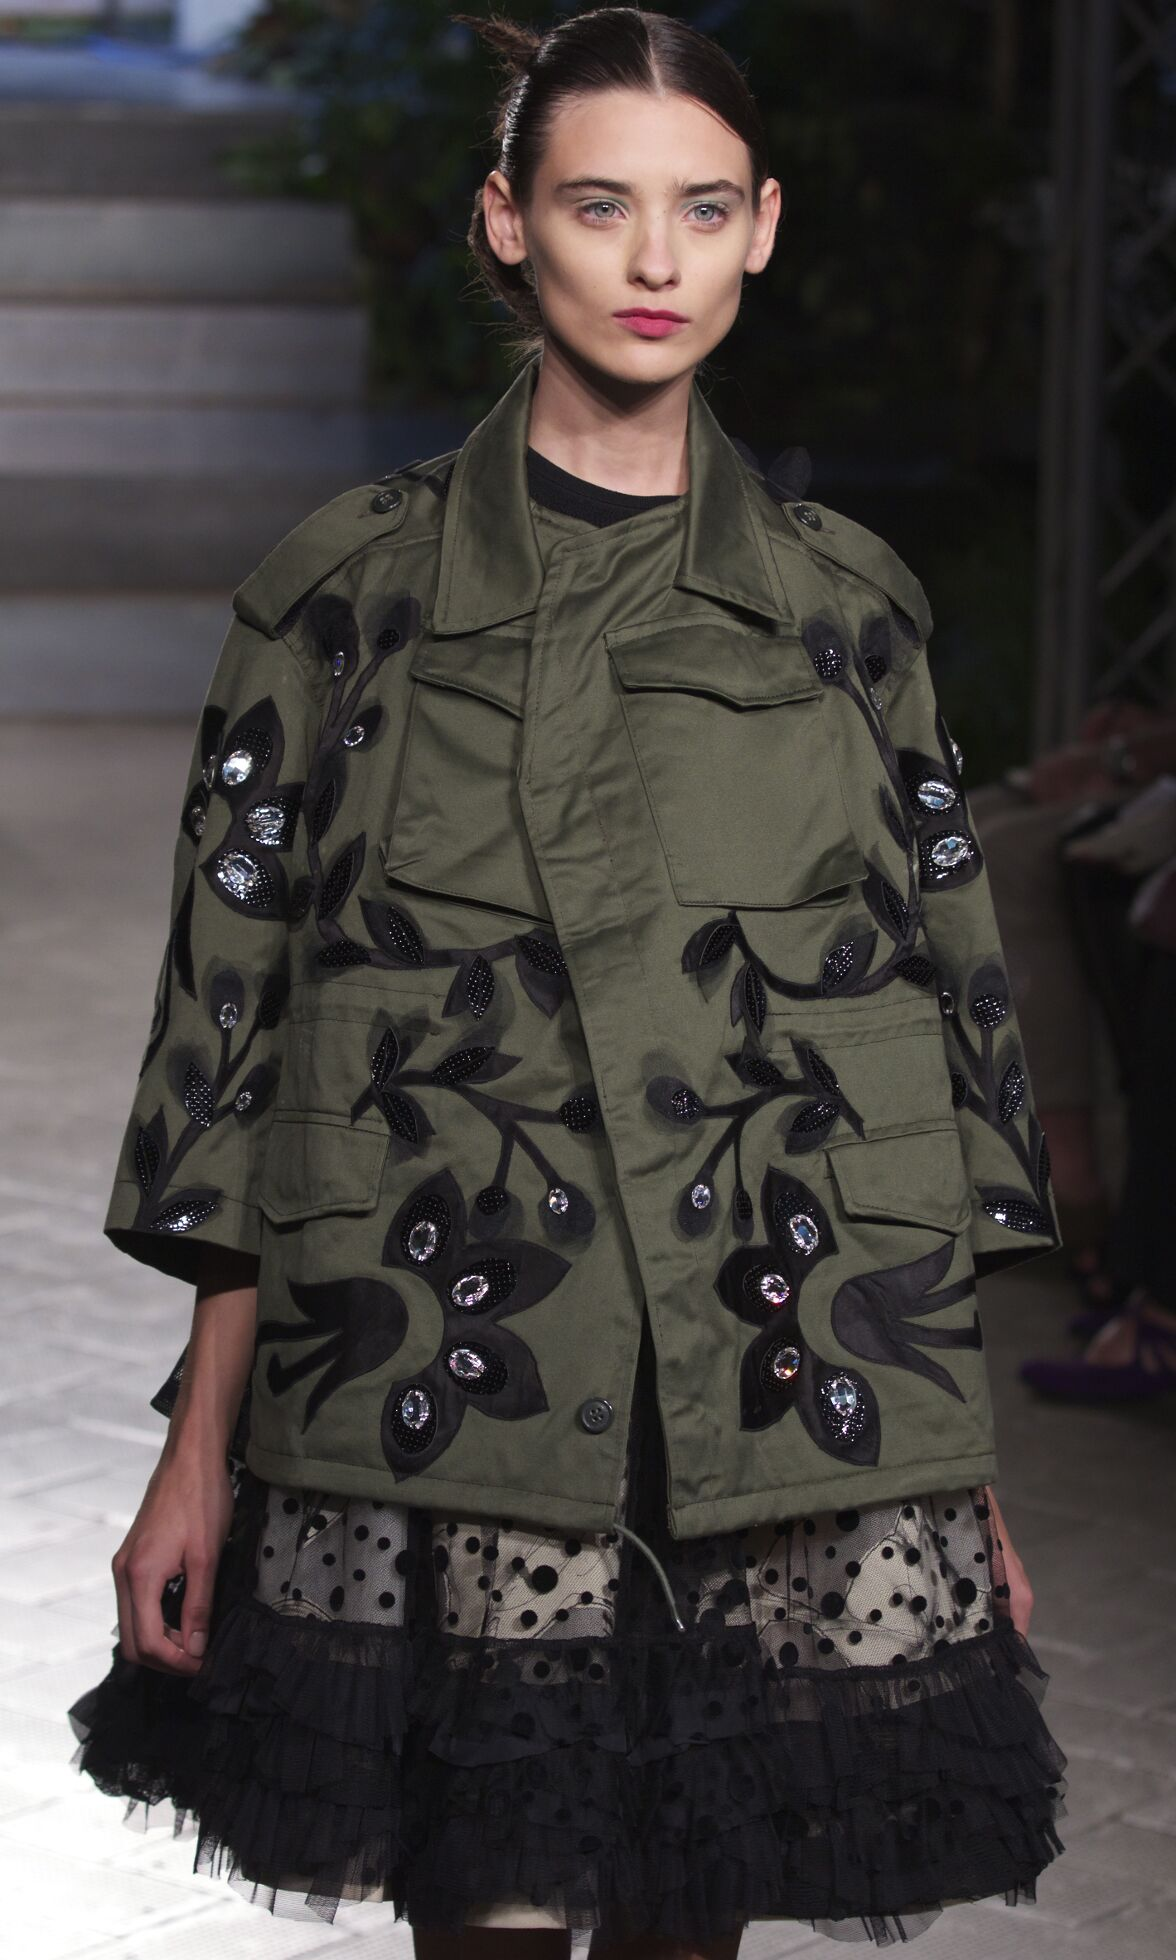 2014 Antonio Marras Spring Catwalk